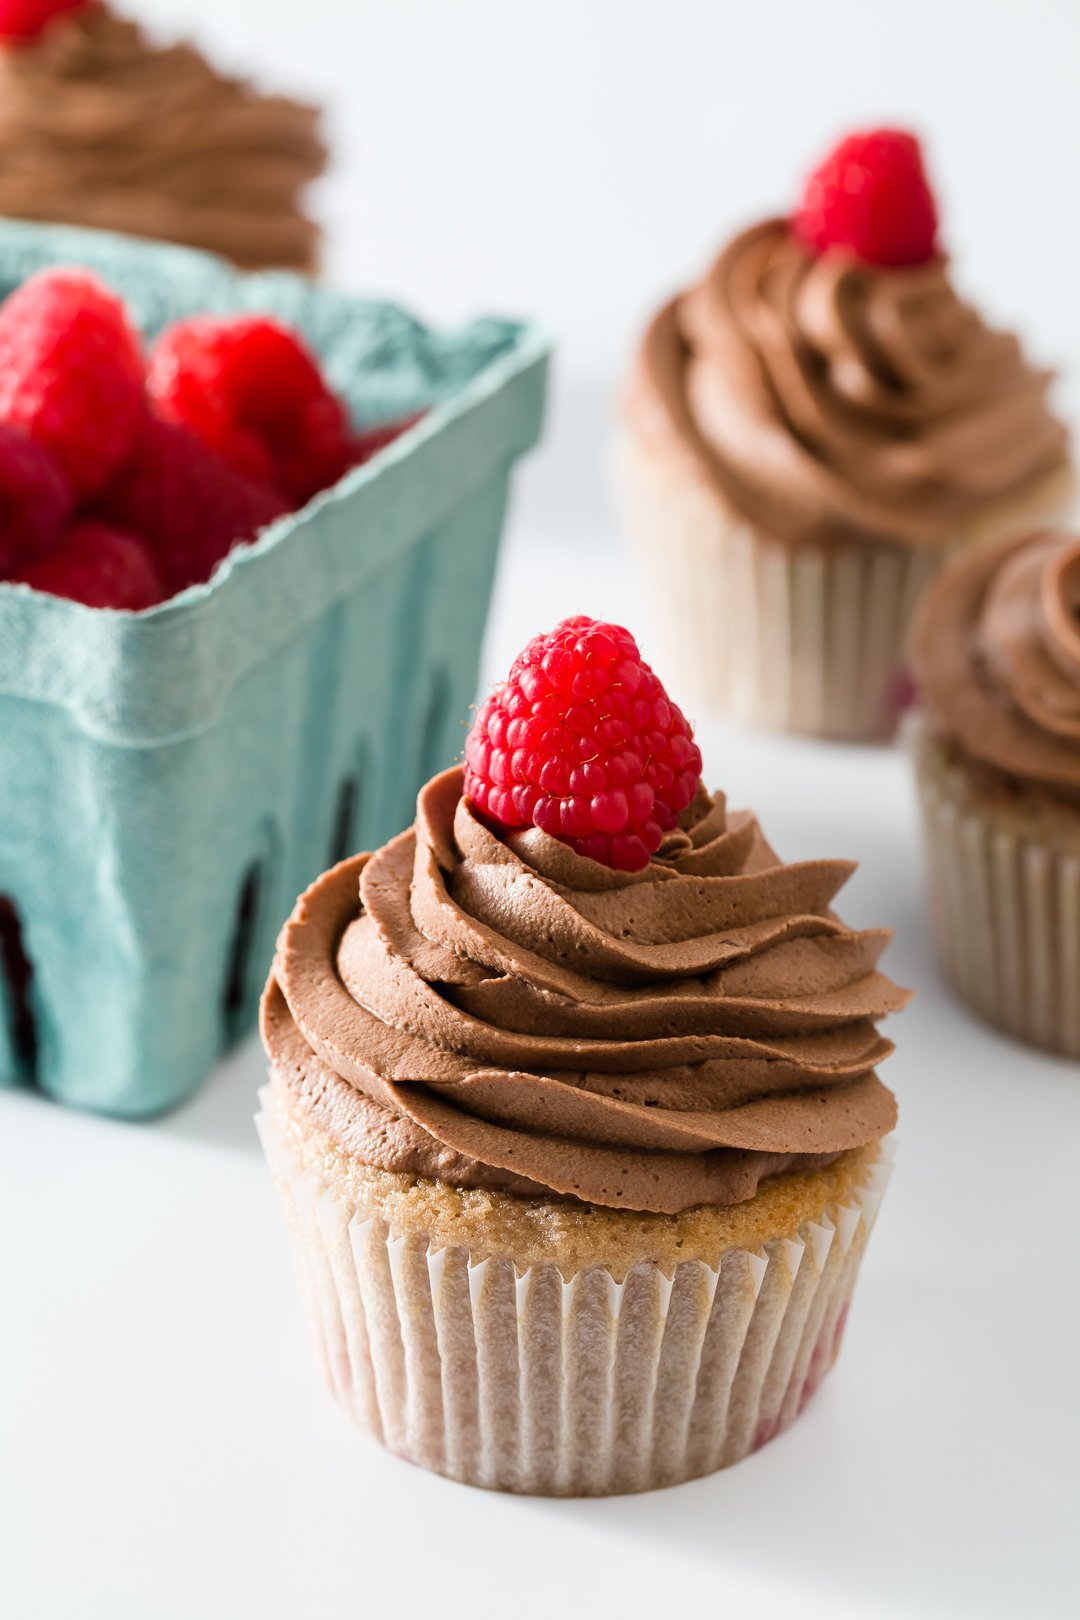 Raspberry cupcakes with raspberries in the background